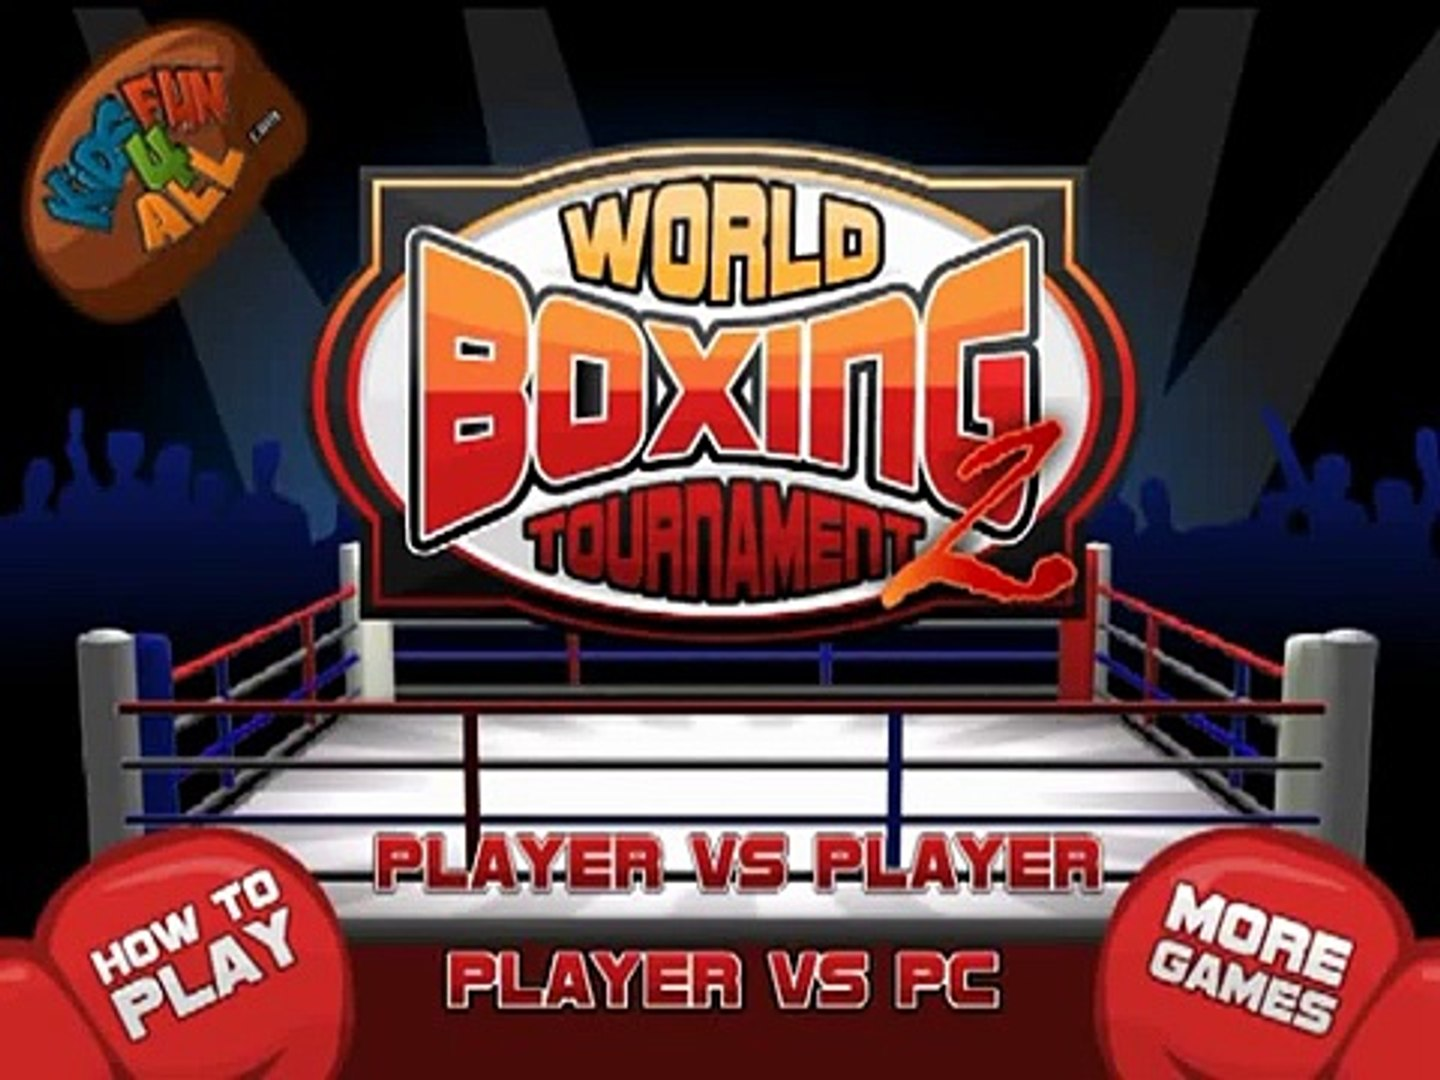 World Boxing Game Tournament Game for Kids